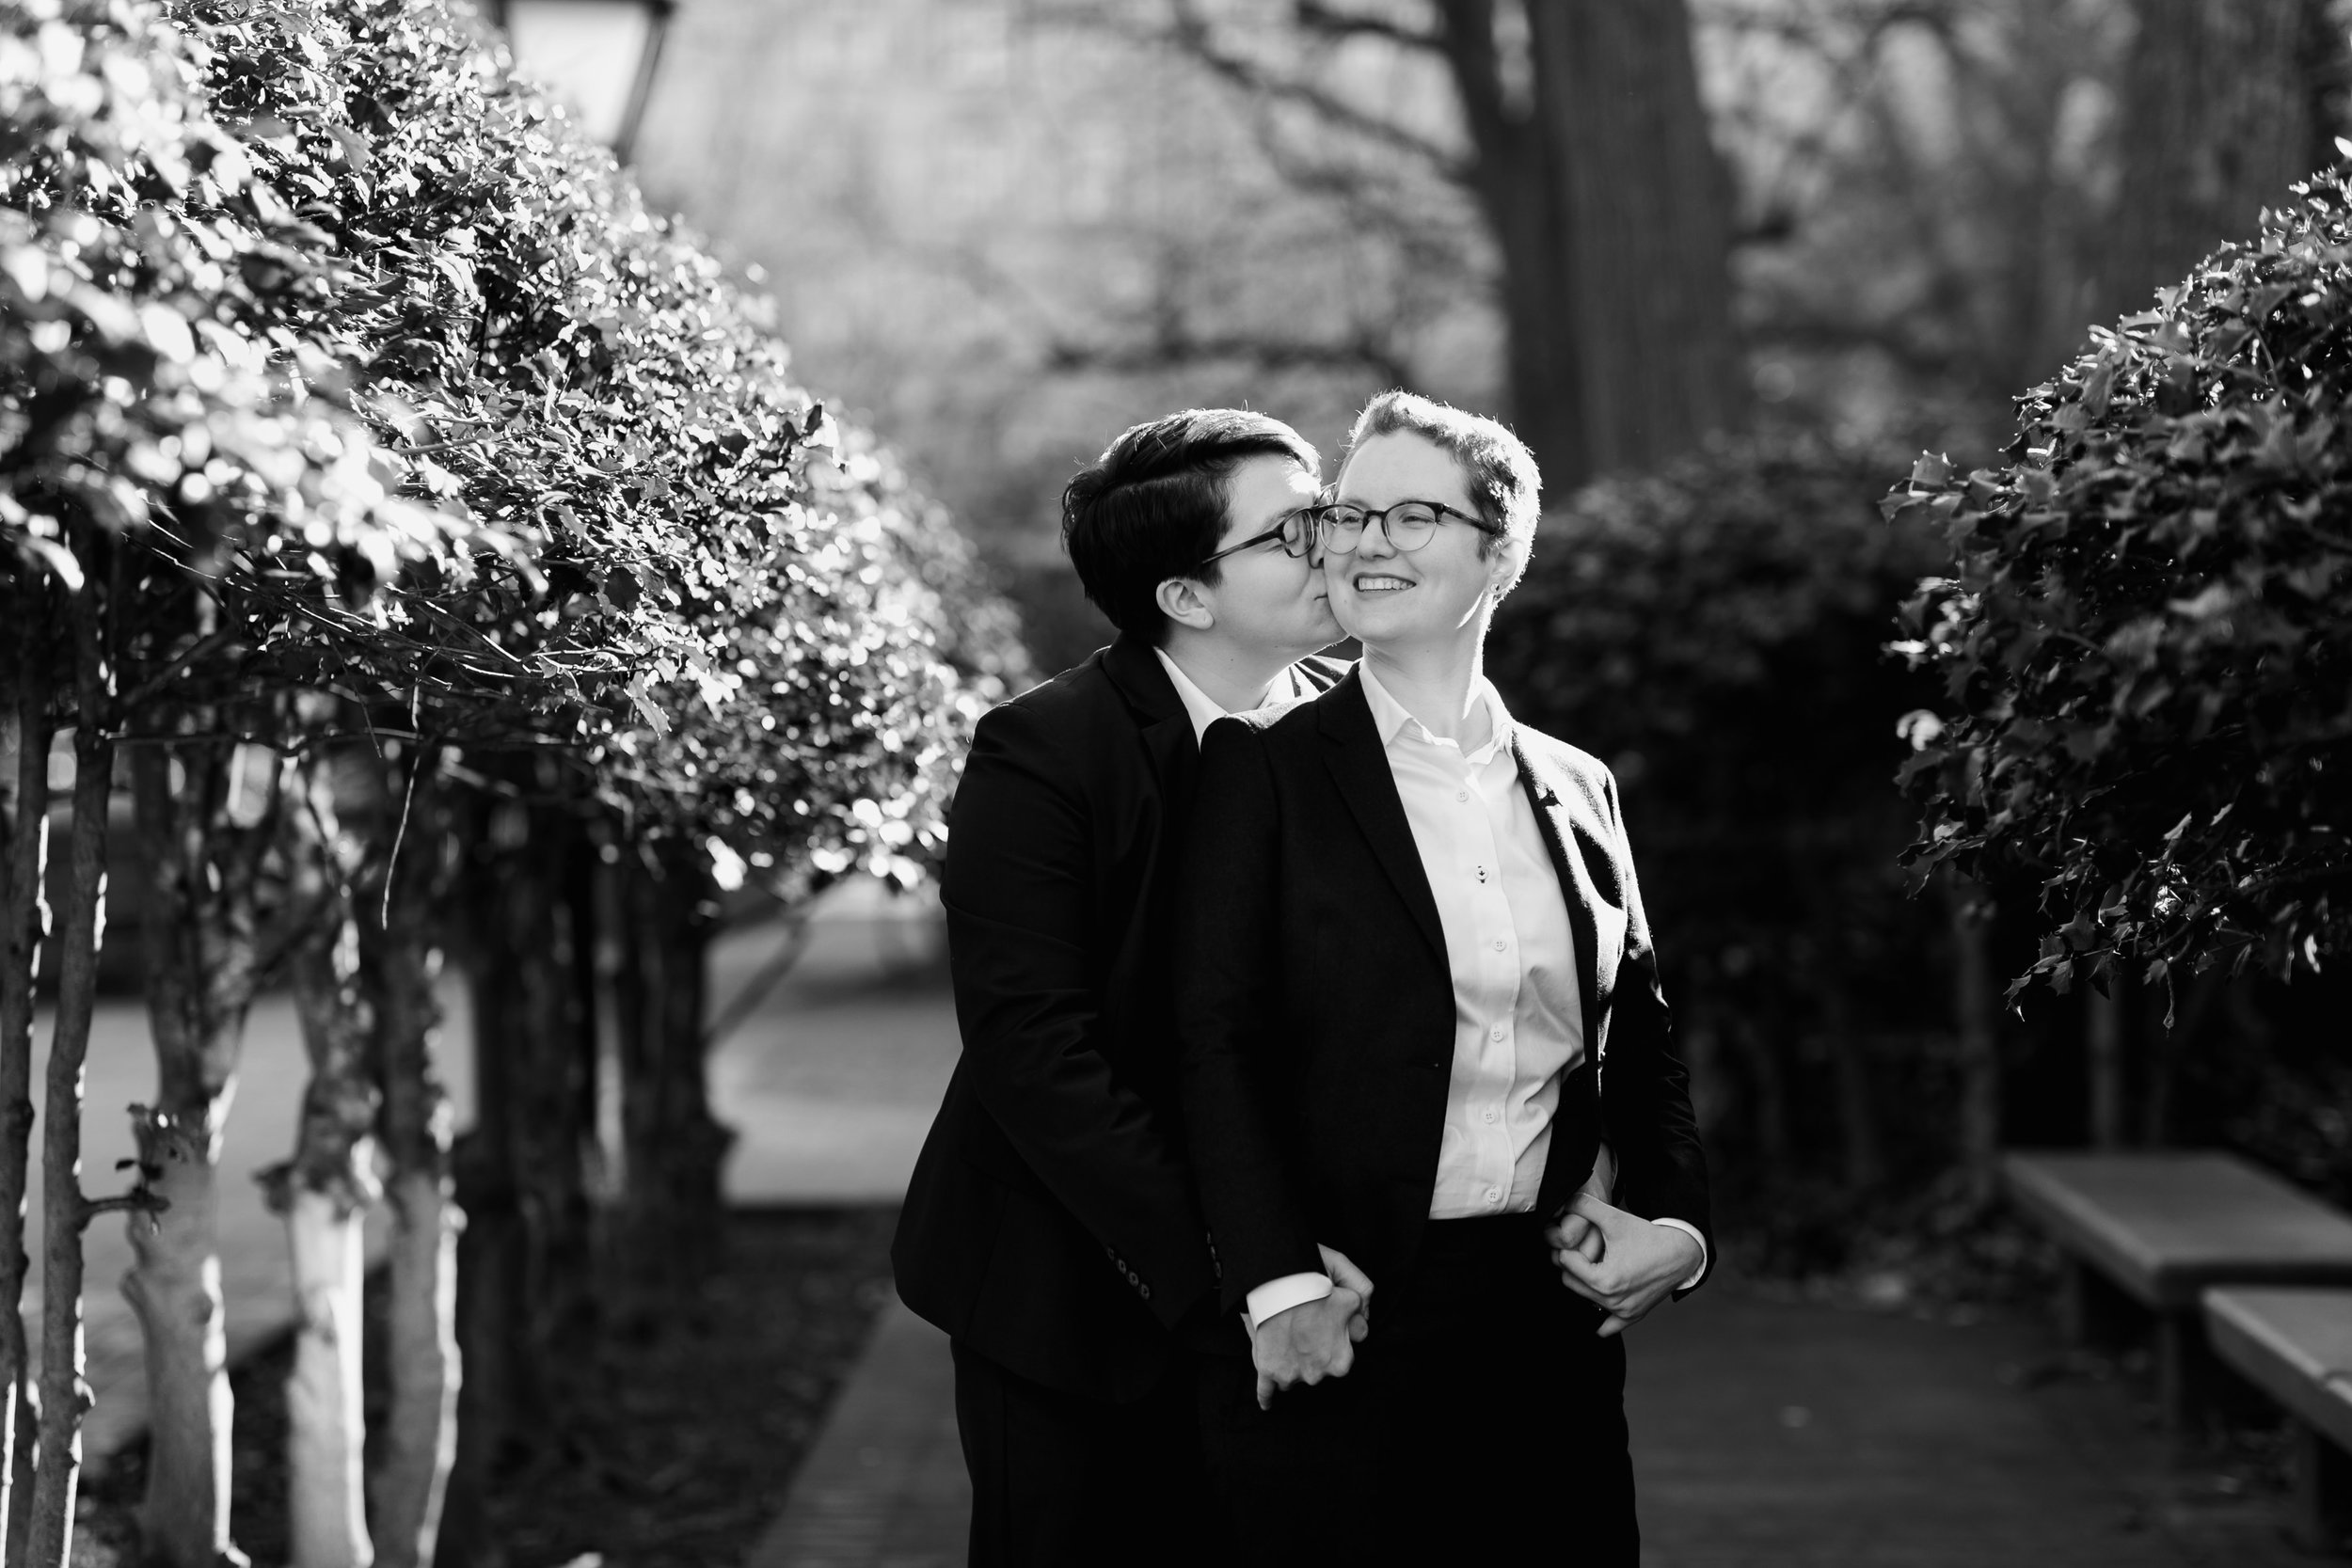 philadelphia-photography-wedding-hotel monaco-same sex-lgbtq-modern-fine-art-candid-31.jpg